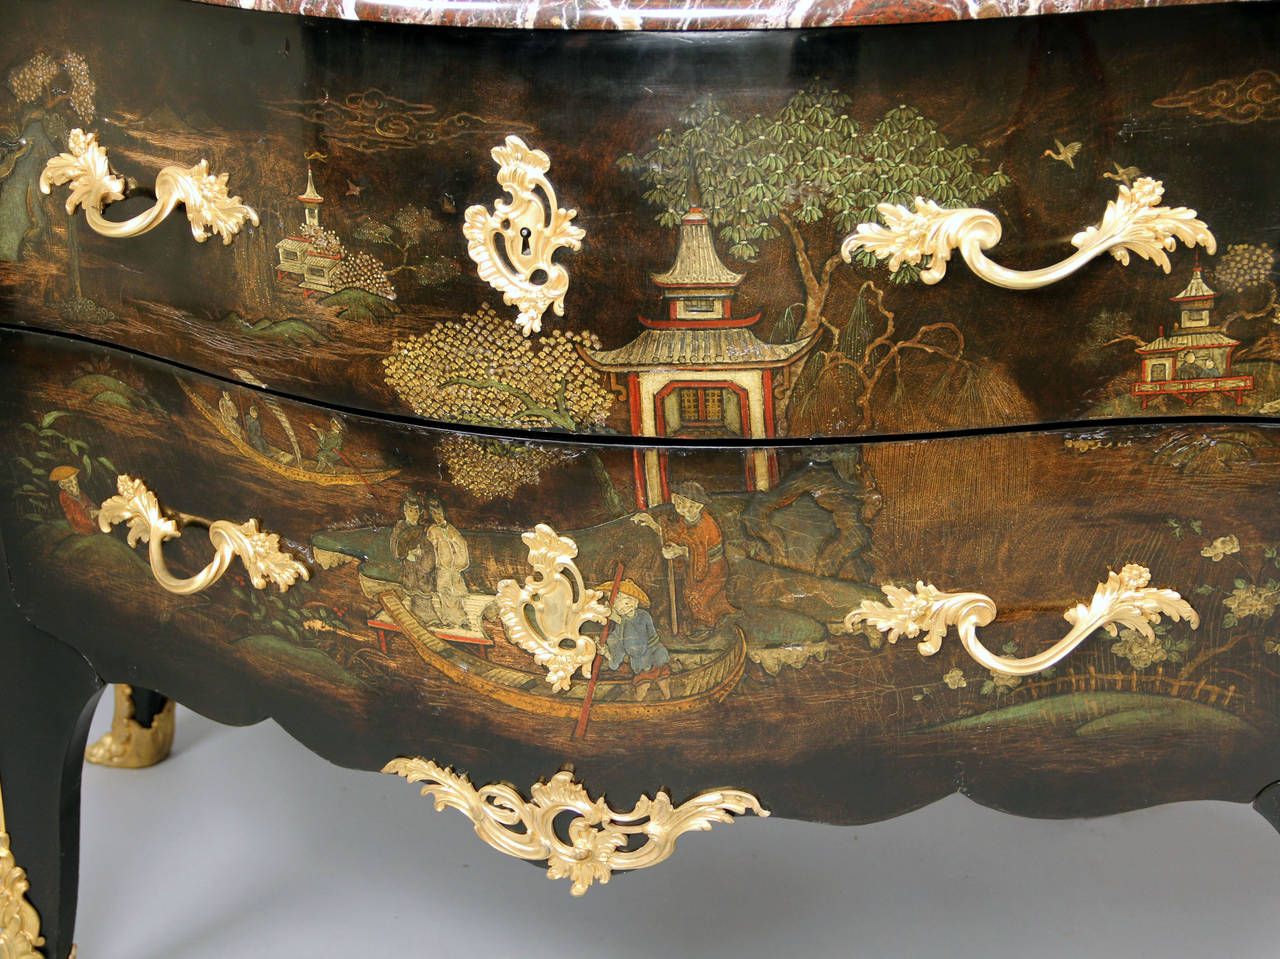 An Exceptional Late 19th Century Louis XV Style Gilt Bronze Mounted Lacquer Commode  By Henry Dasson  With a shaped marble top above two drawers veneered san traverse.  Signed Henry Dasson 1870 to the right front bronze.  Henry Dasson was considered